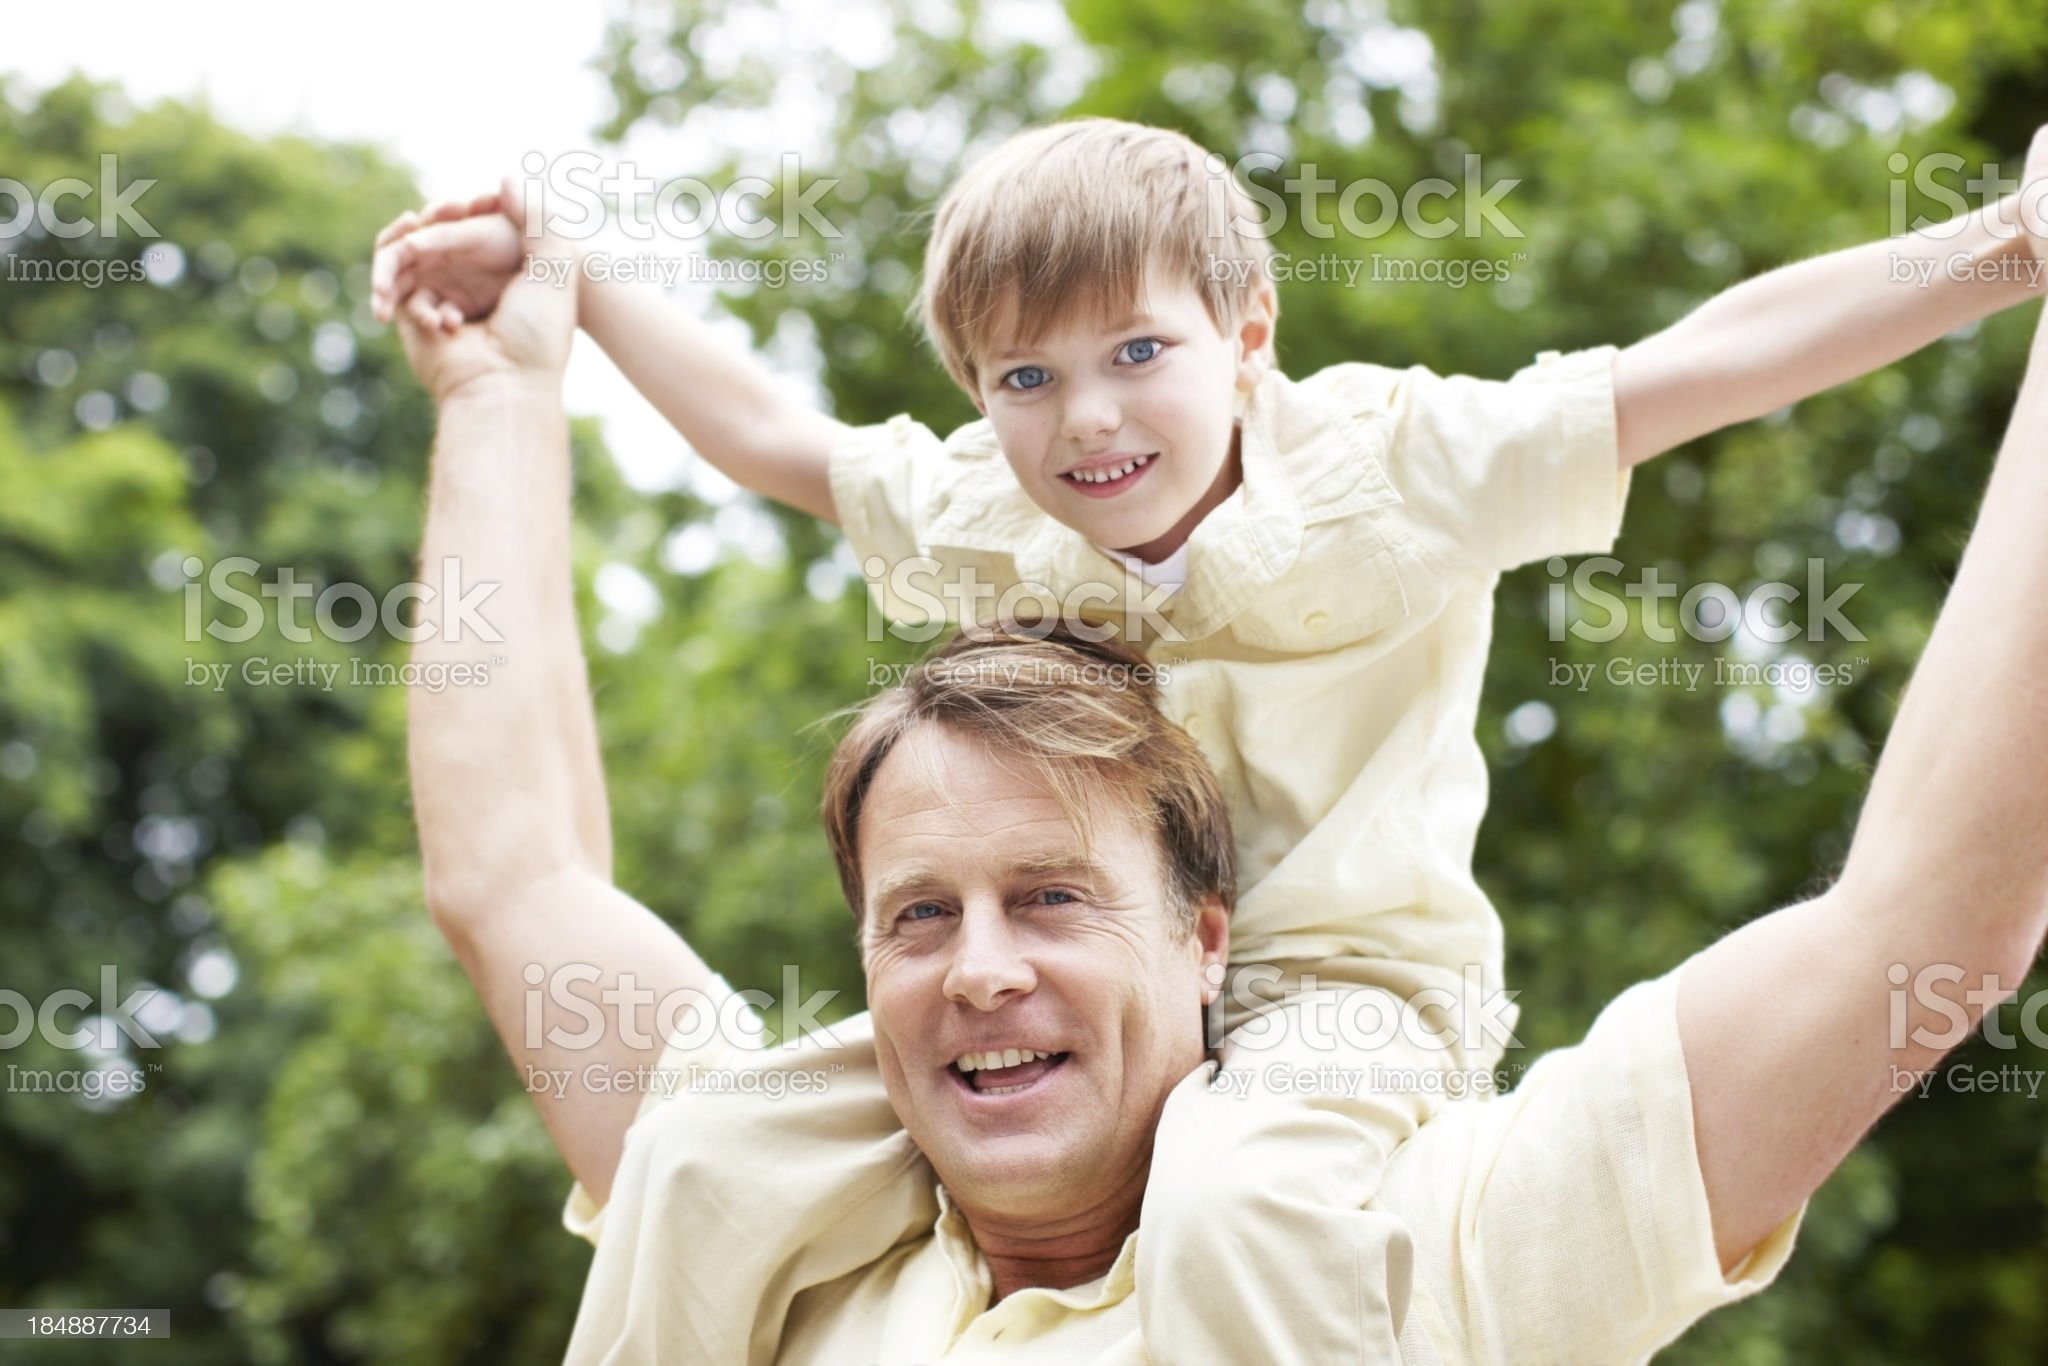 Lifting our spirits together royalty-free stock photo